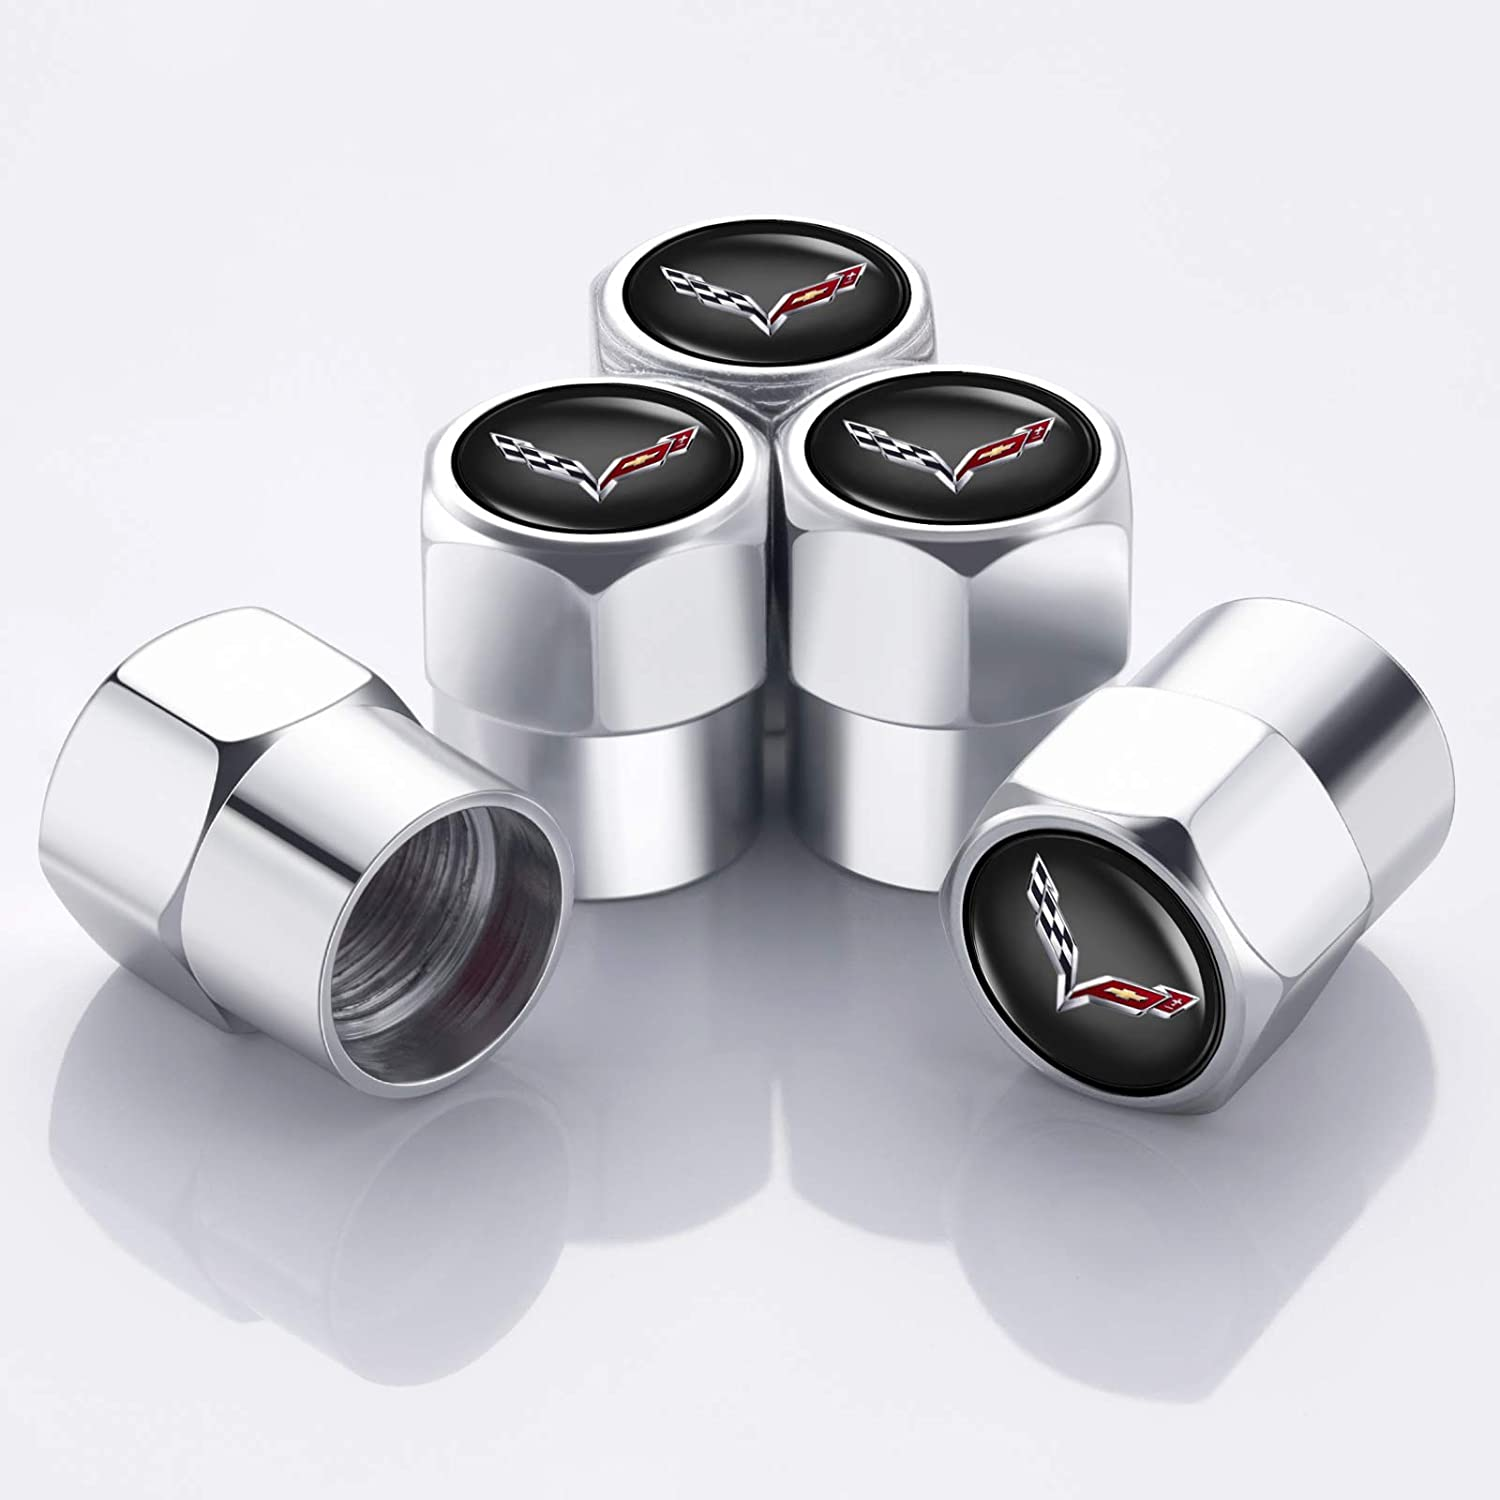 PATWAY 5 Pcs Metal Car Wheel Tire Valve Stem Caps for Lincoln Navigator TownCar Continental MKZ MKX MKC Logo Styling Decoration Accessories.